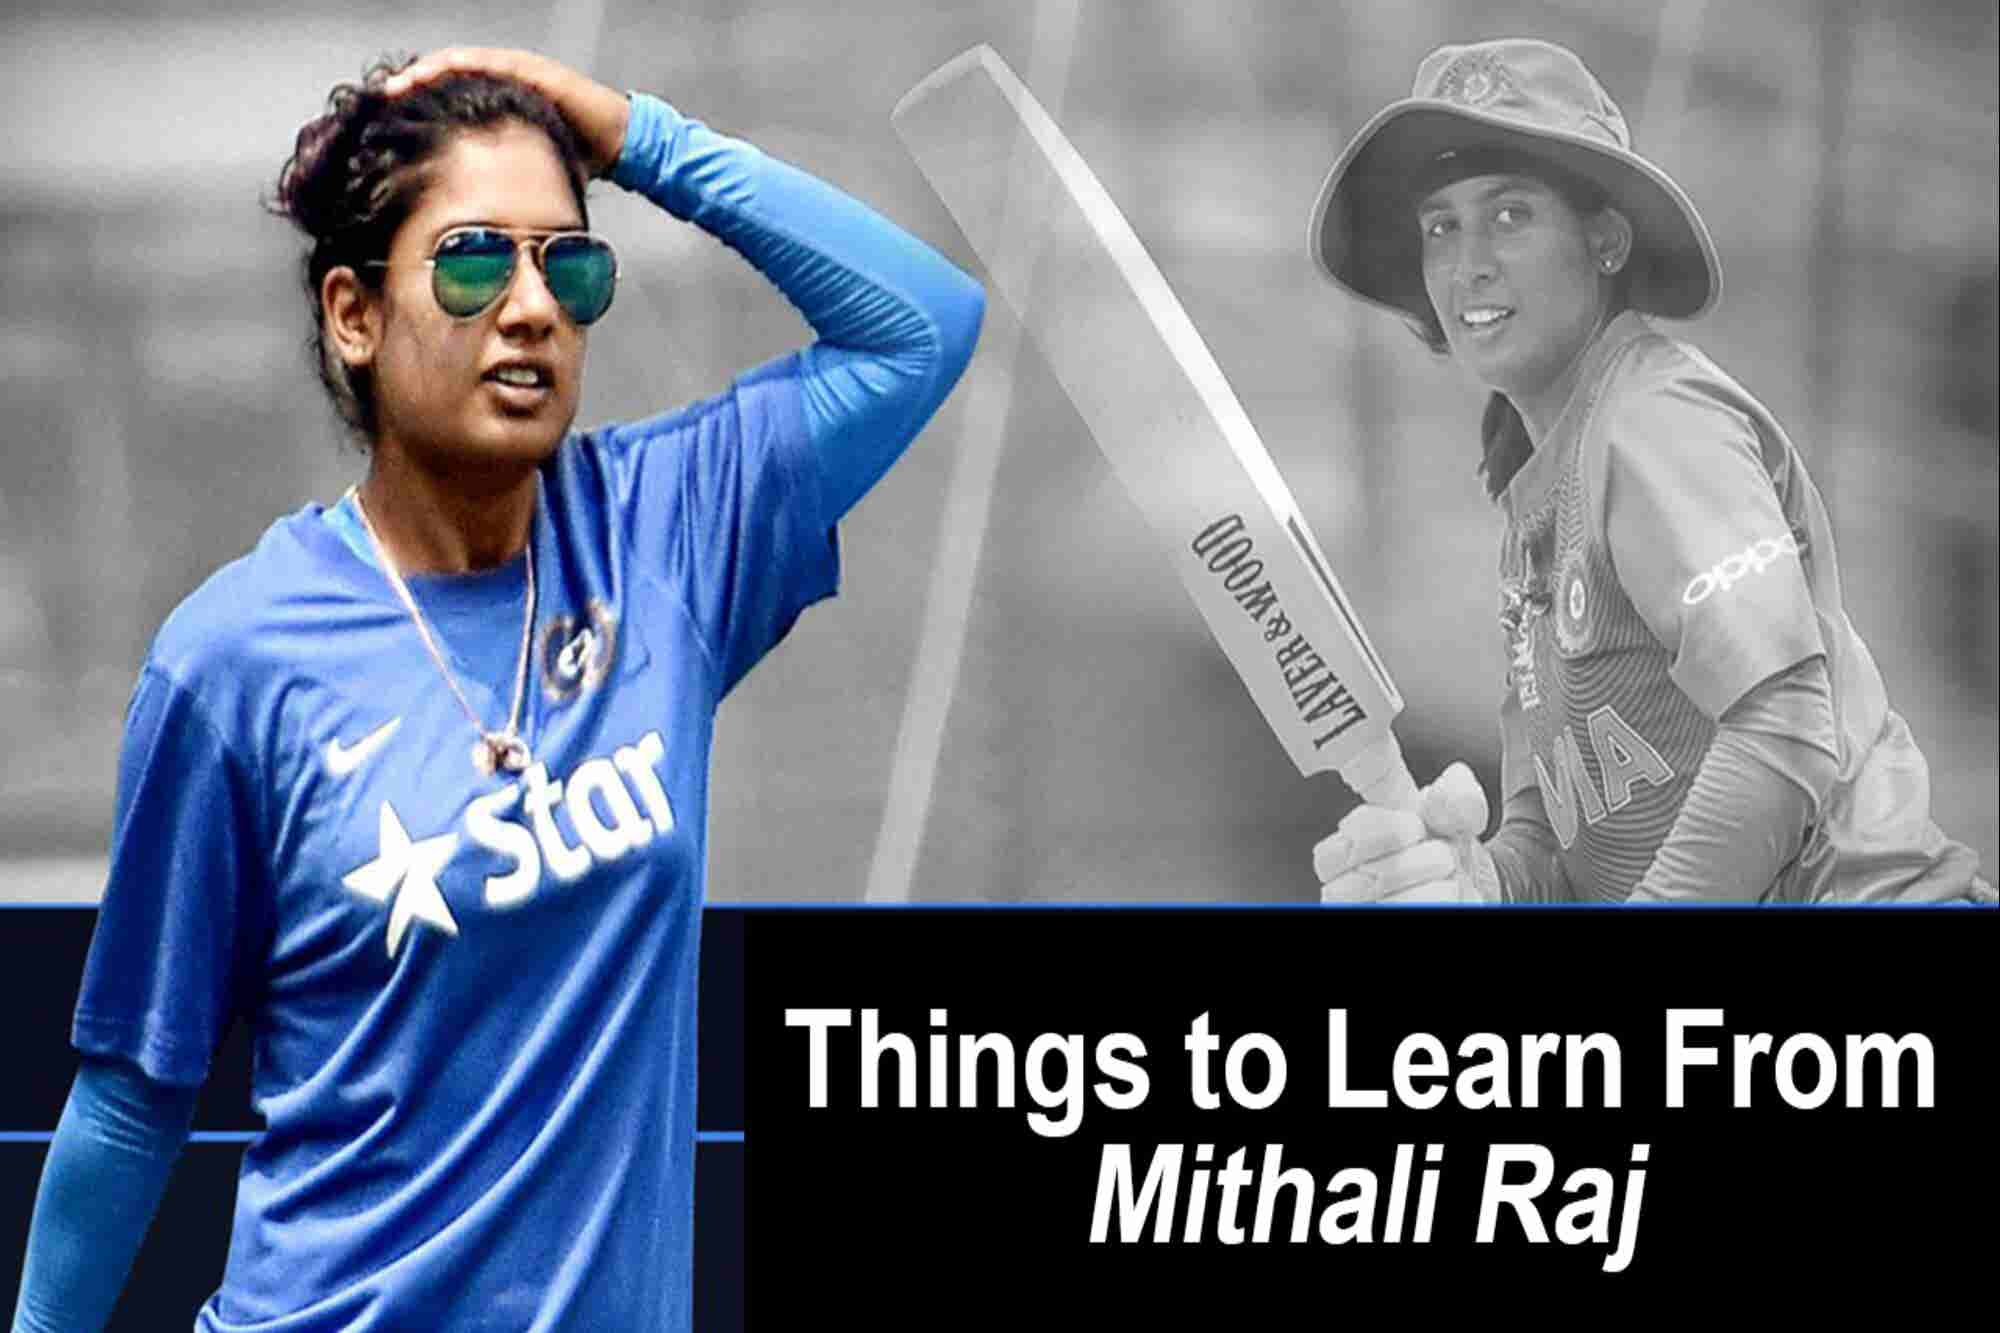 Wednesday Wisdom: Mithali Raj is the First Indian Women to Play 200 ODIs. Here Are 4 Things We Can Learn From Her